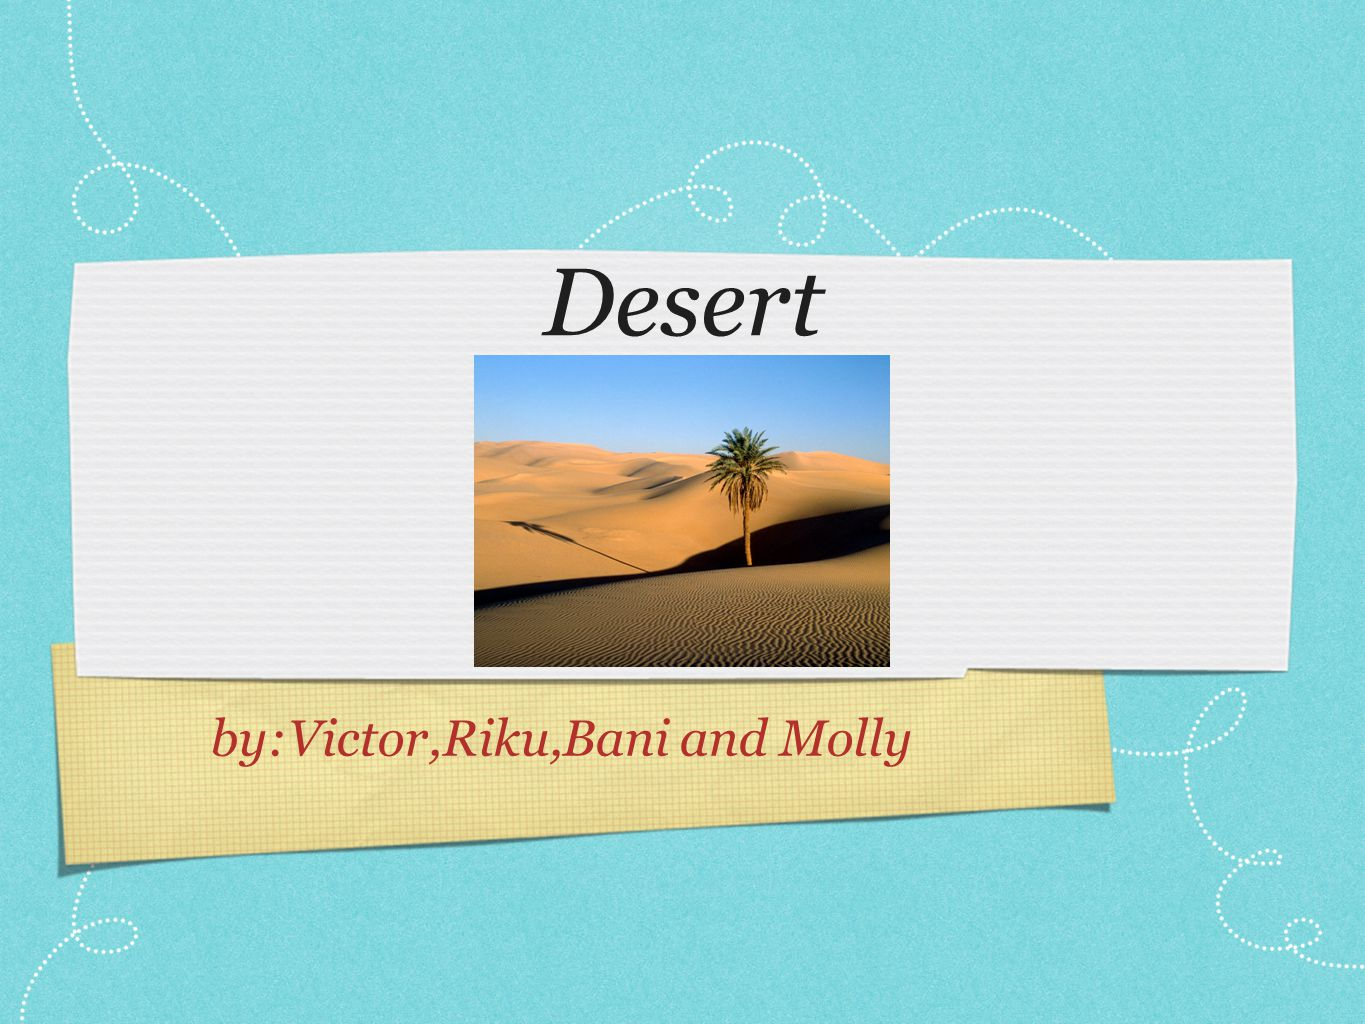 Deserts around the world In the world there are many deserts.